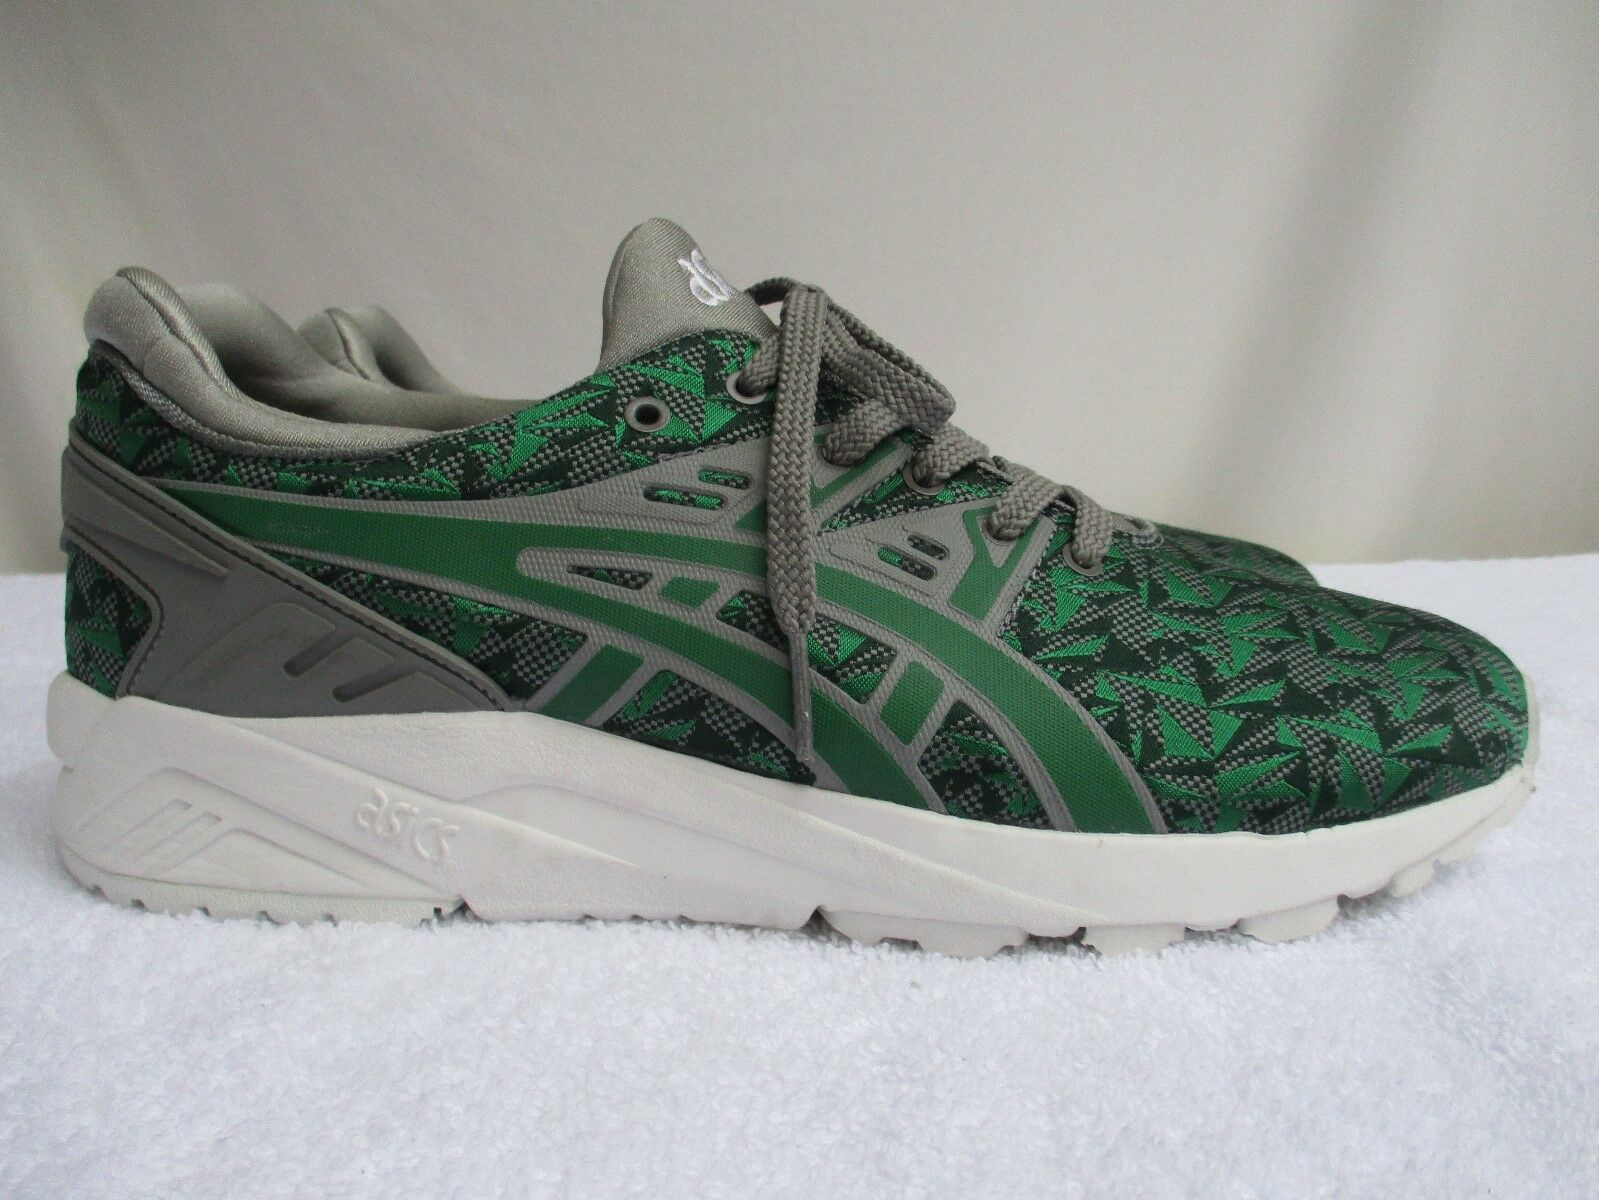 ASICS..GEL-KAYANO ASICS..GEL-KAYANO ASICS..GEL-KAYANO TRAINER EVO..GREEN & GREY..GEOMETRIC PATTERN..SNEAKERS..9 NEW 88ec5b